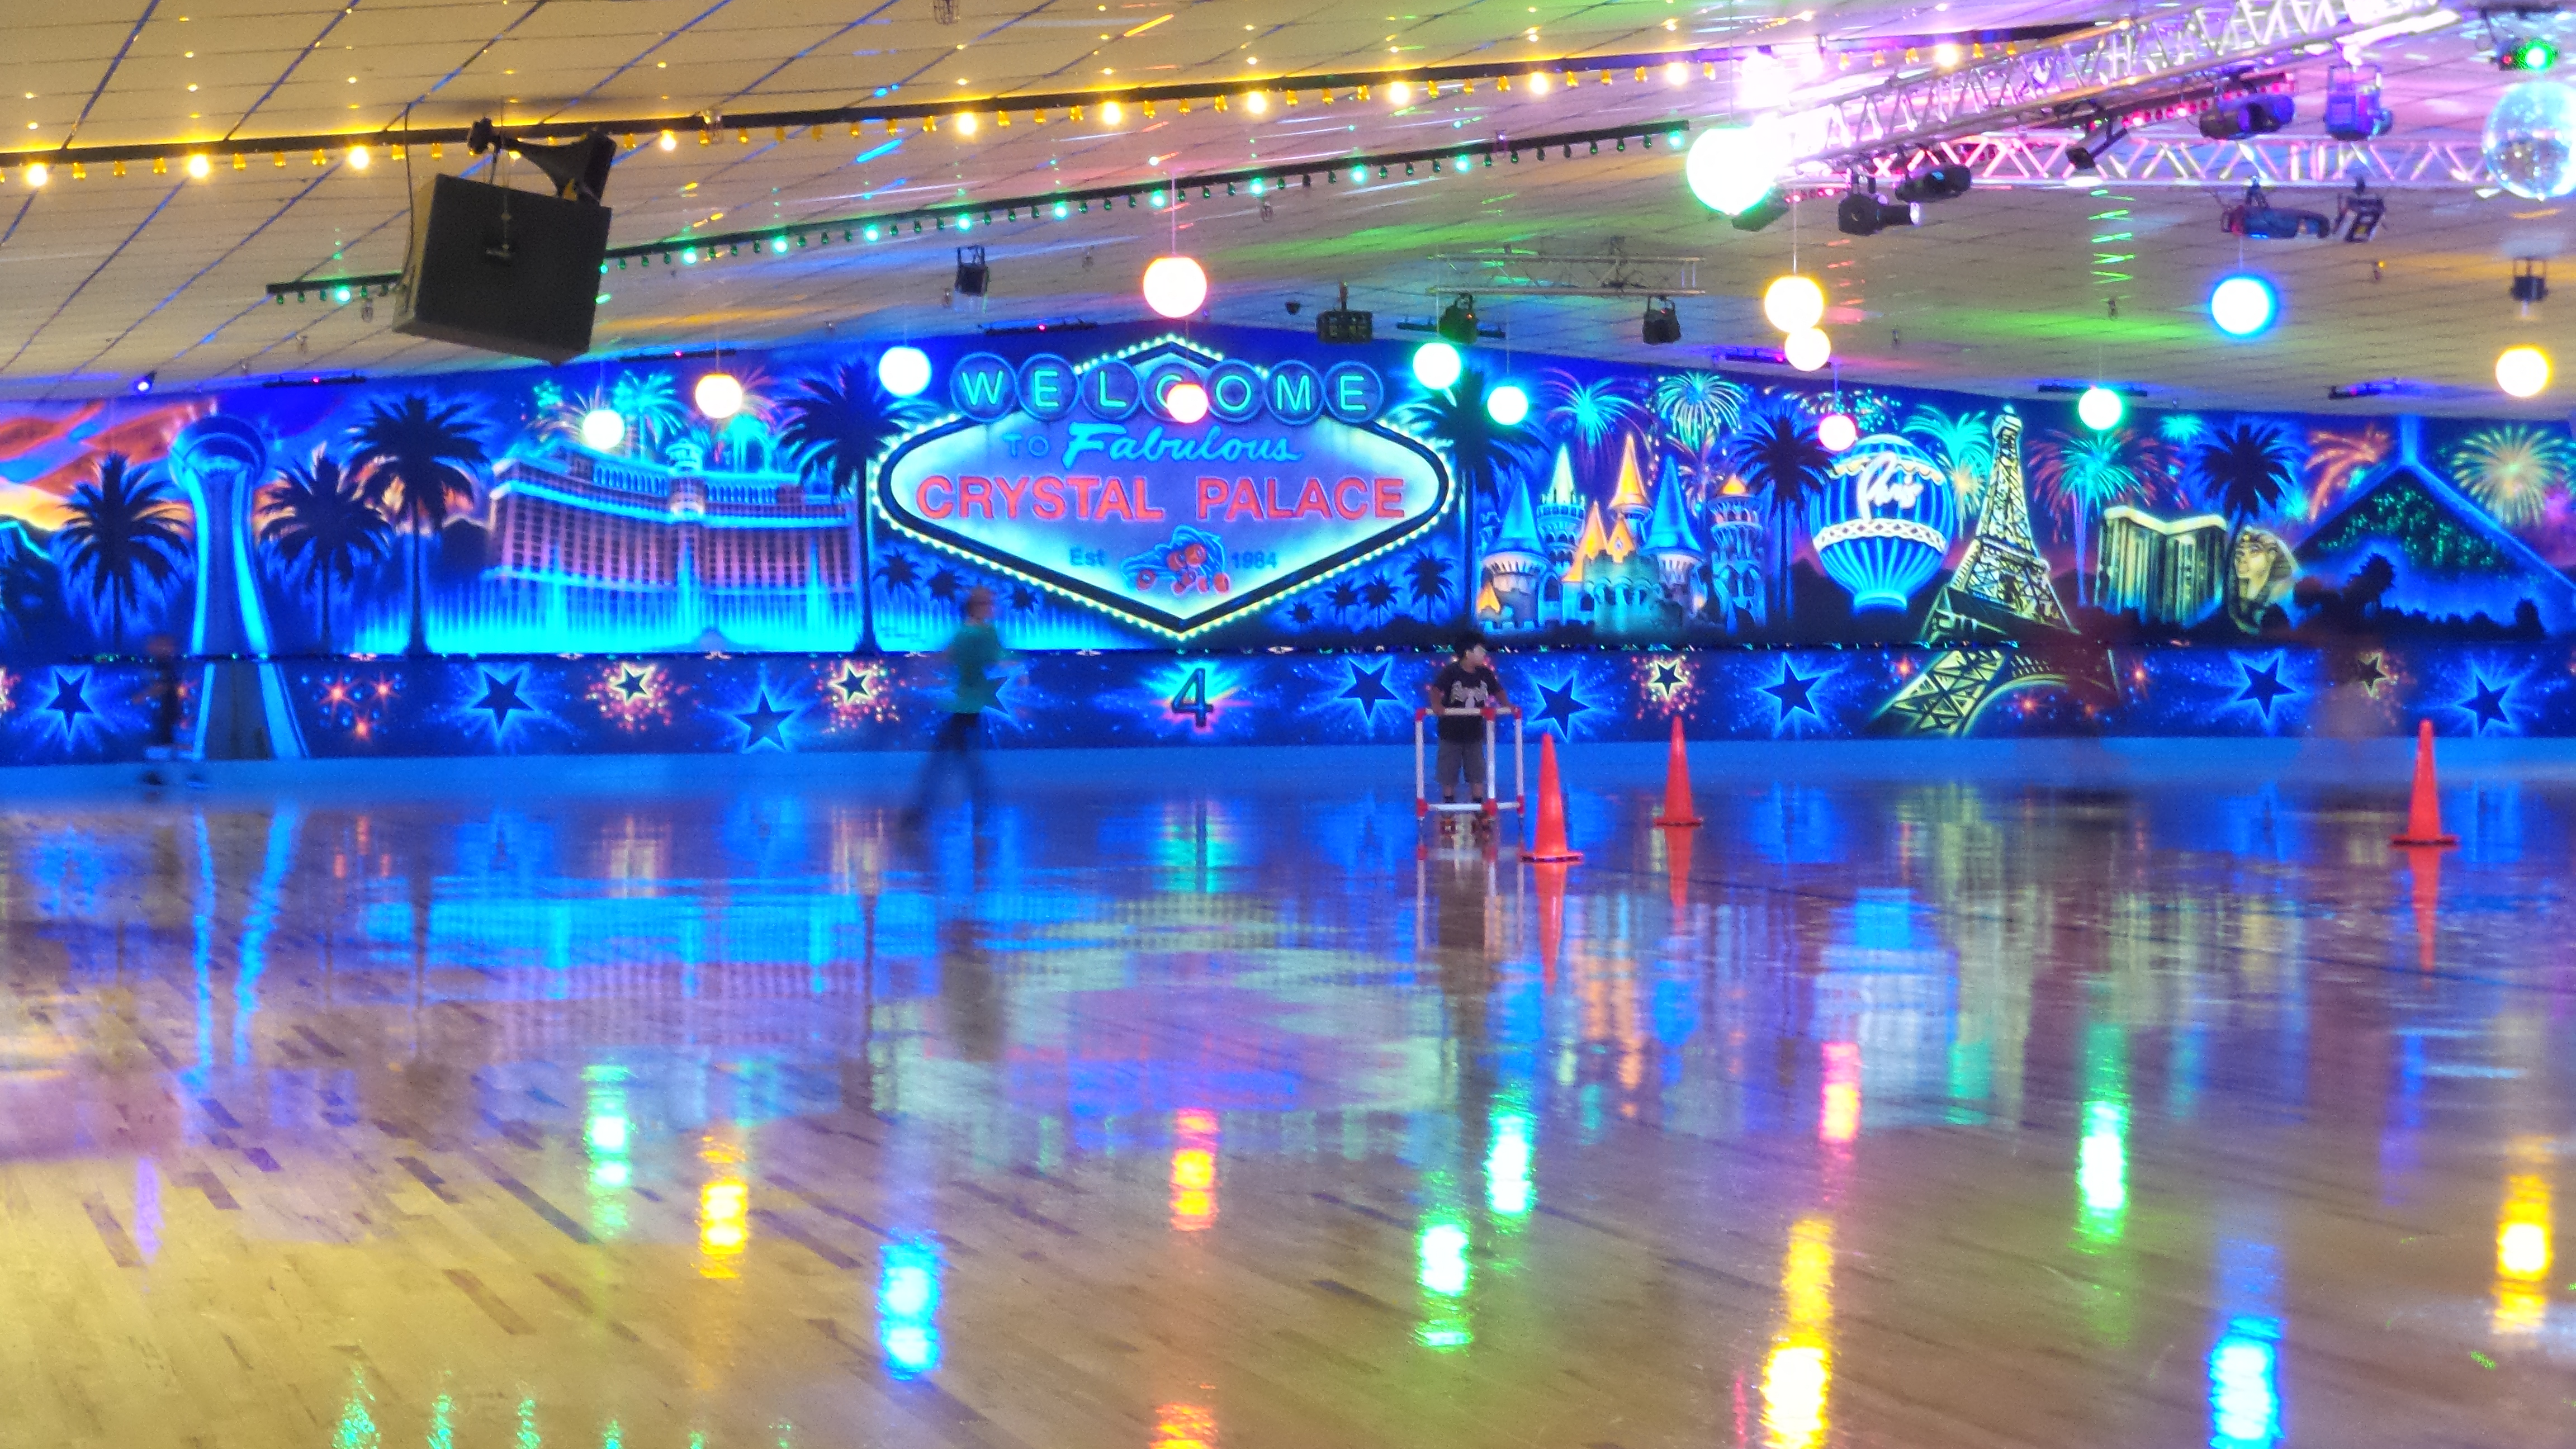 More Information about The Alexandra Palace Ice Rink